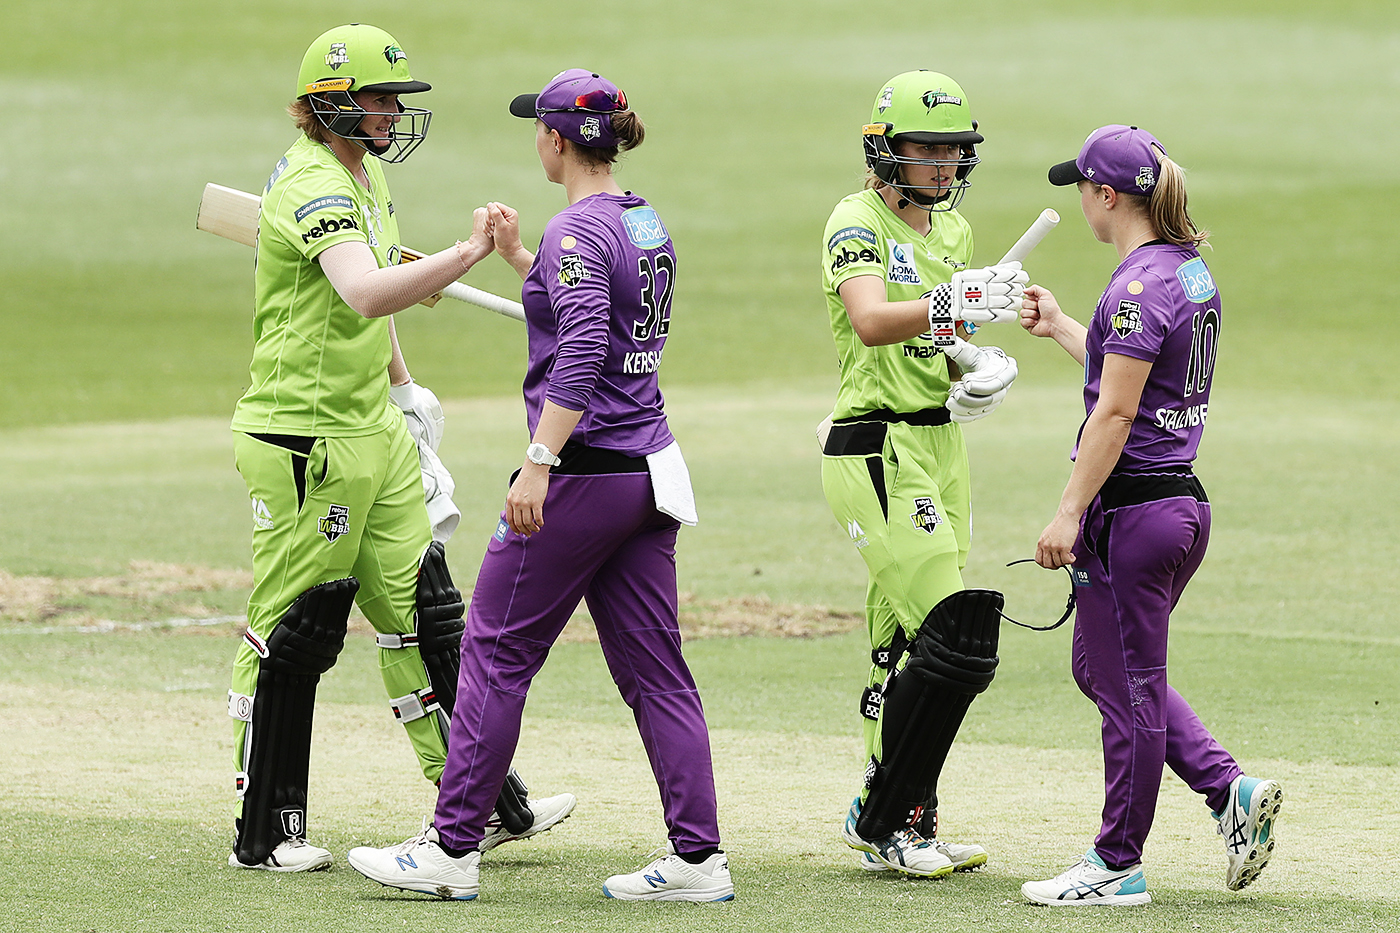 Sydney Thunder and Hobart Hurricanes' players greet each other at the end of their WBBL game